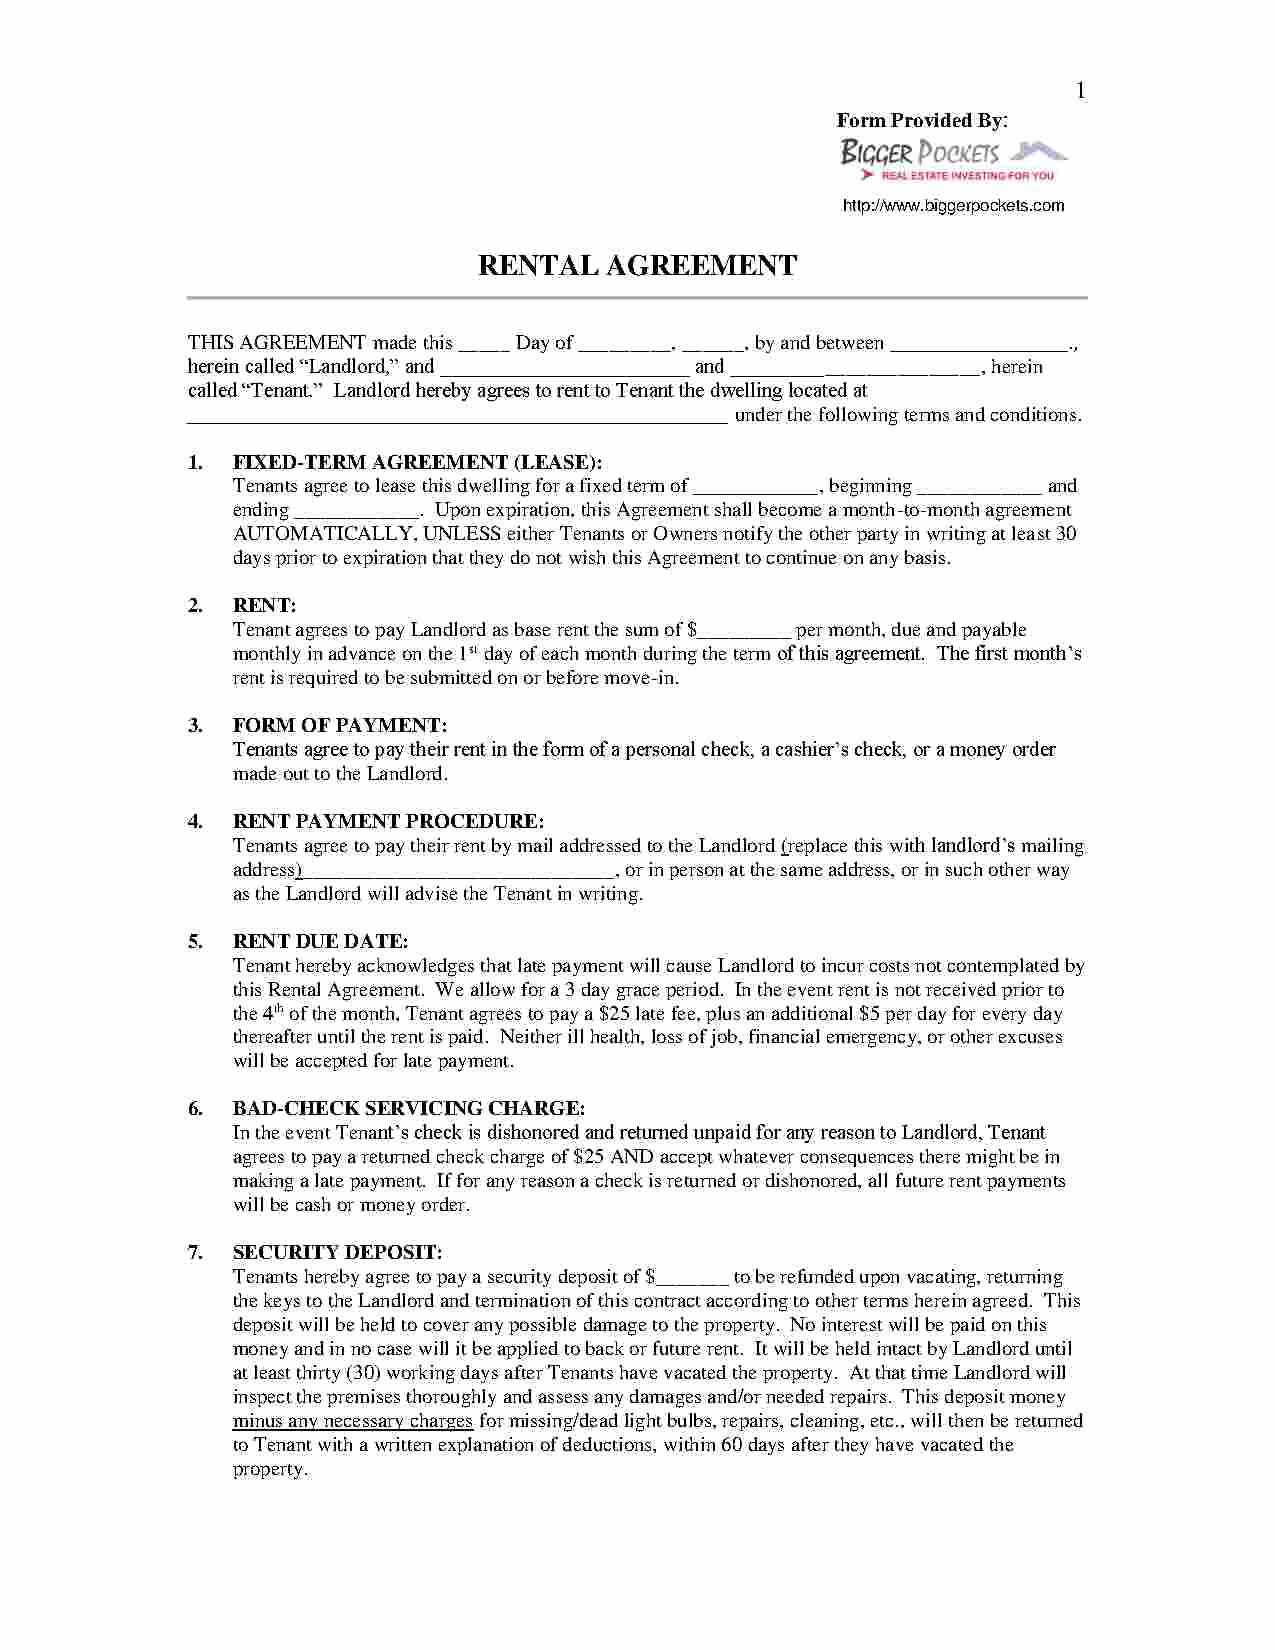 Vacation Rental Agreements Template Beautiful Download Vacation Rental Short Term Lease Agreement Style